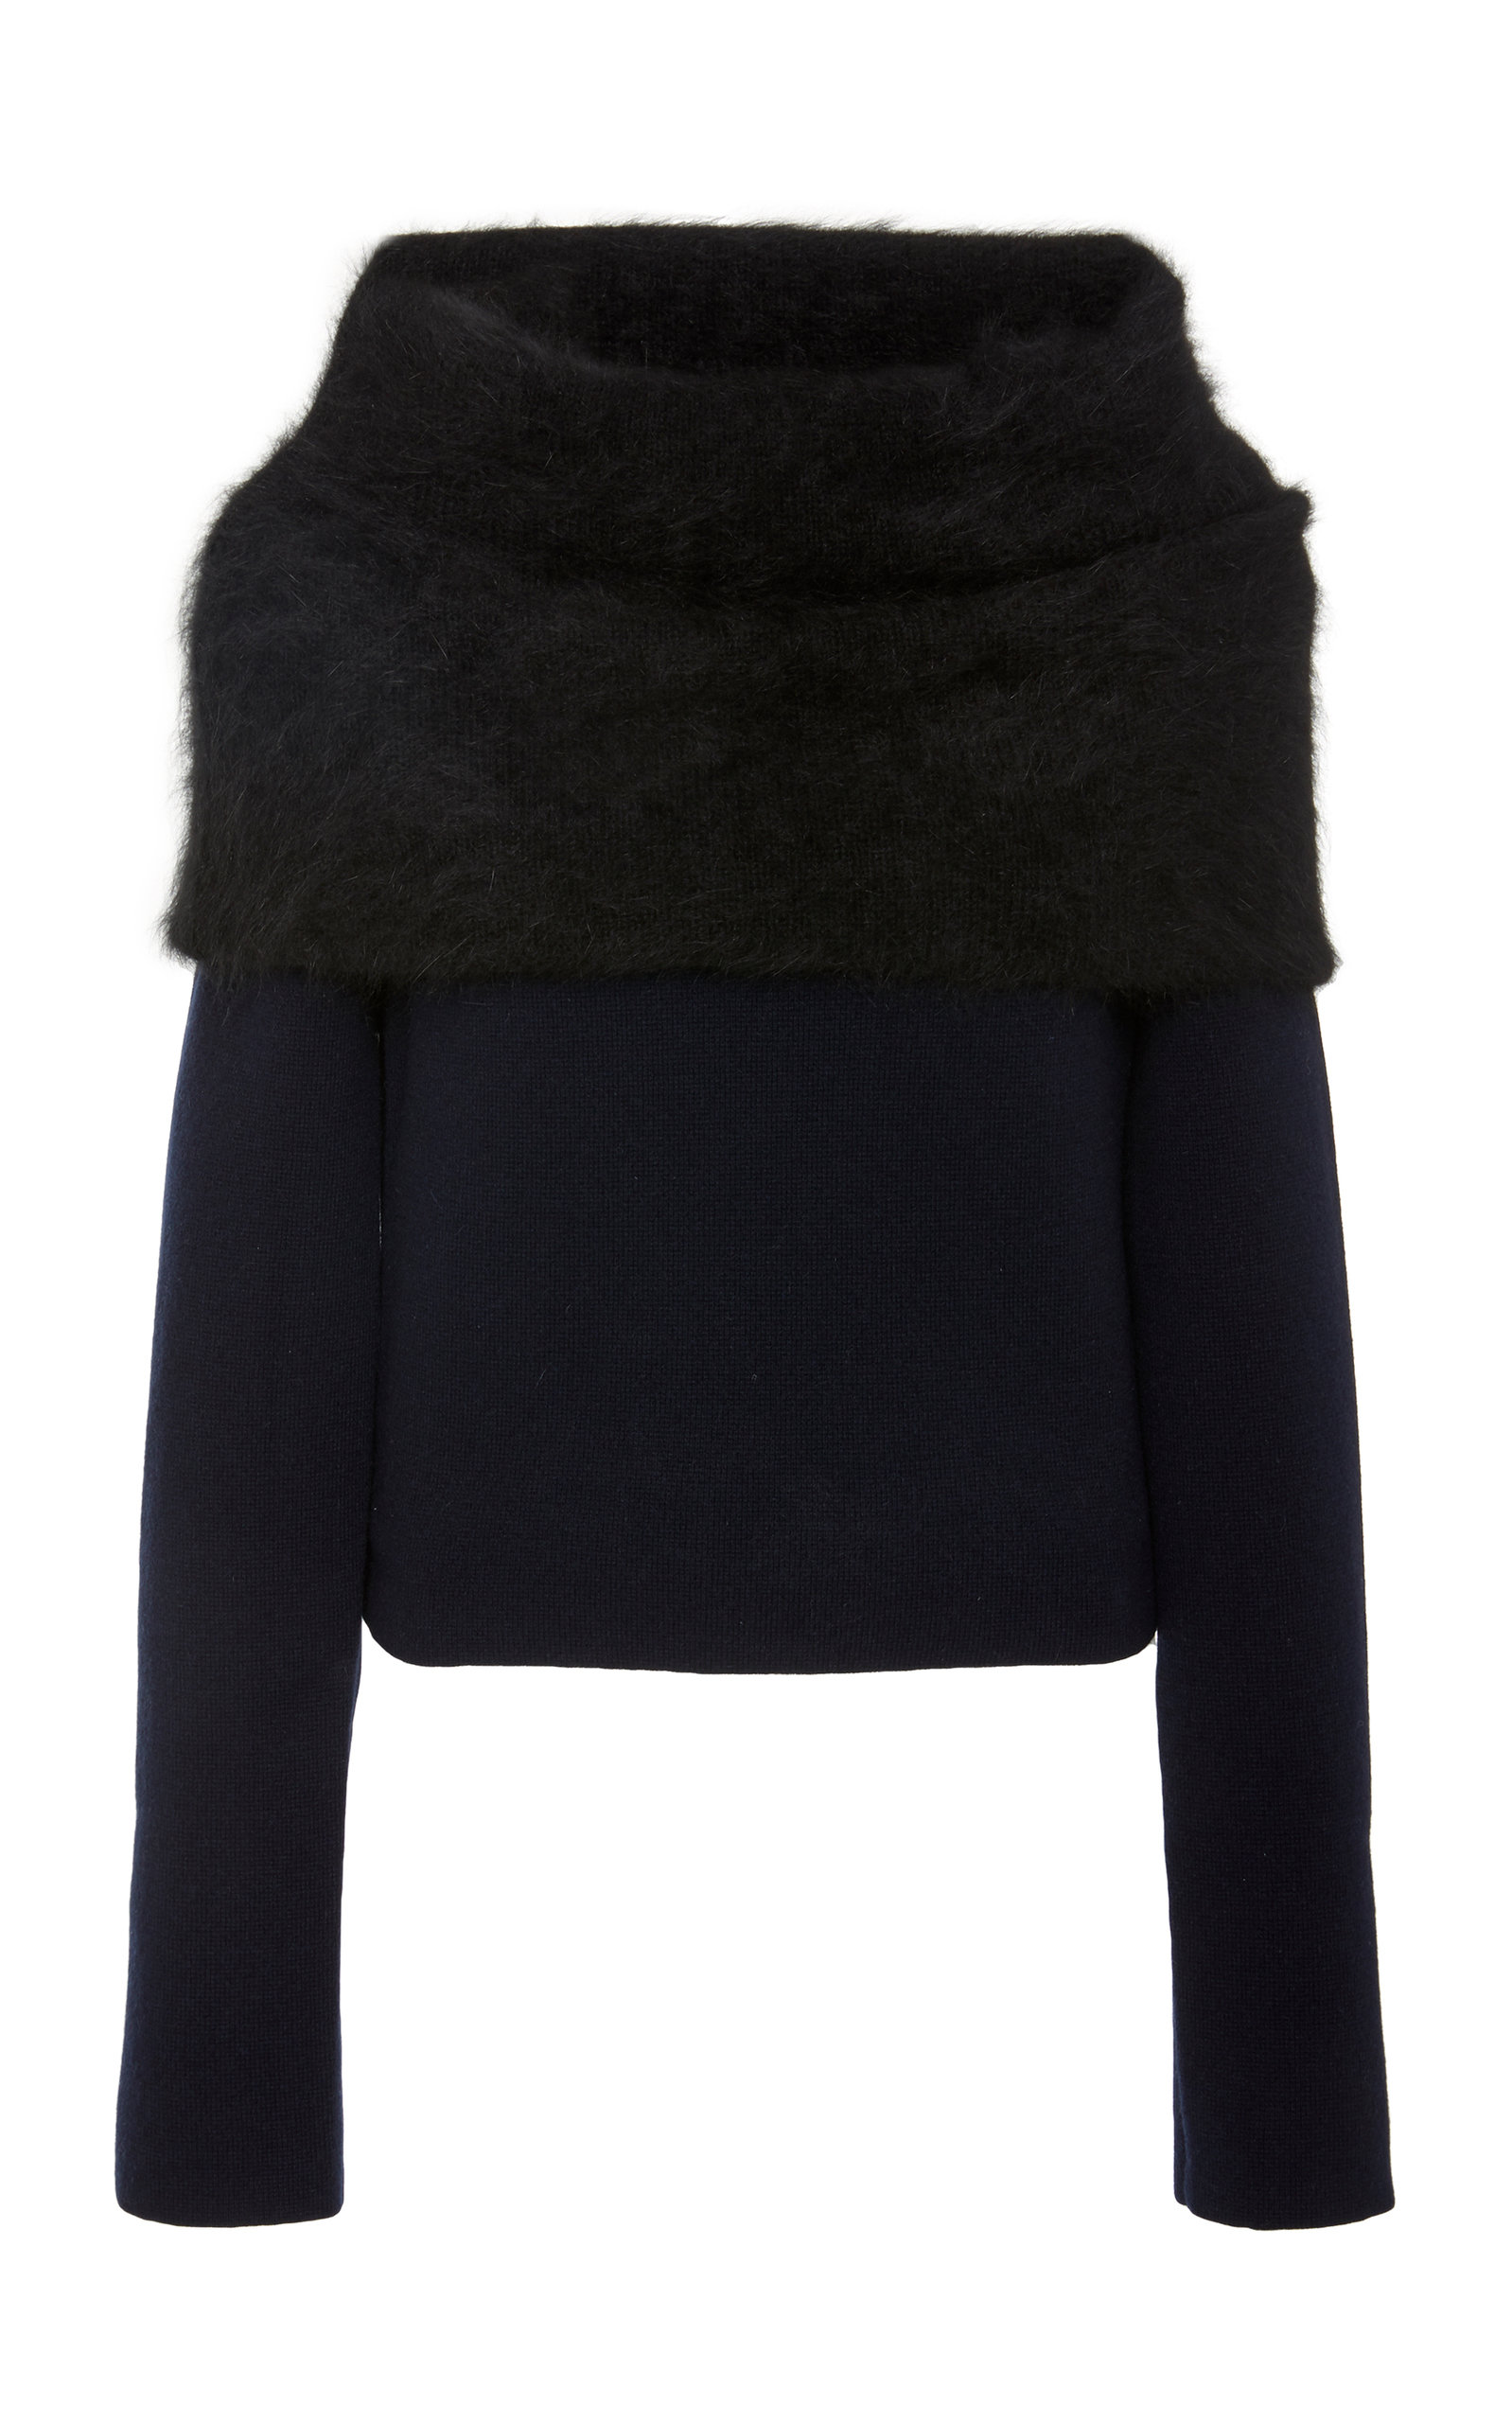 YEON M'O Exclusive Ileana Angora-Trimmed Wool And Cashmere Blend Sweater in Black